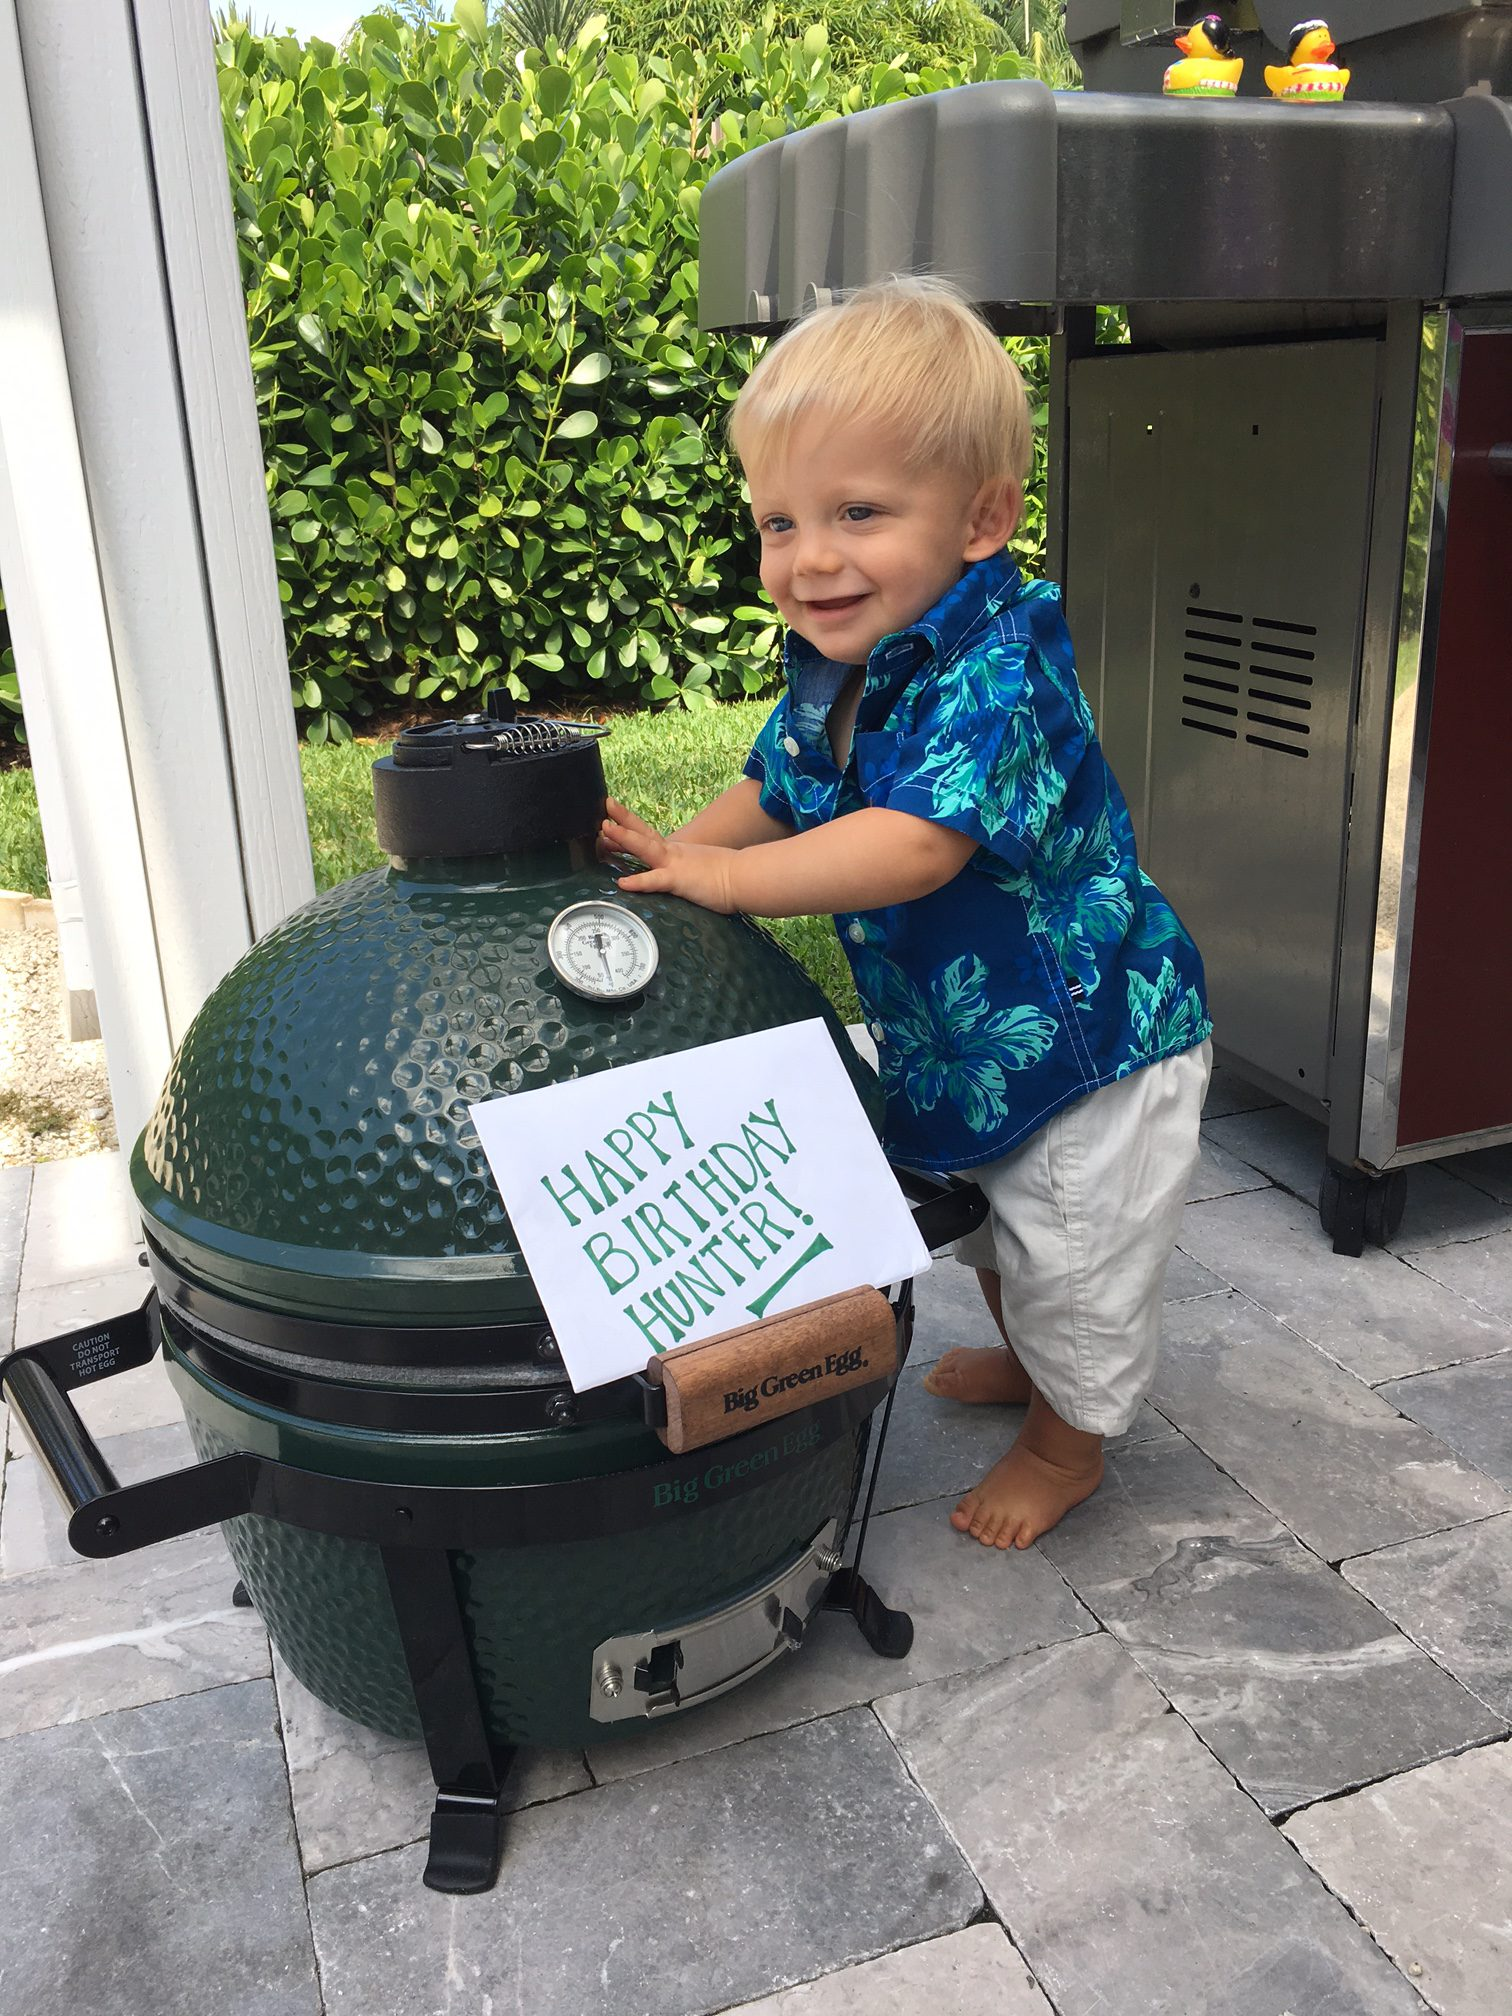 Is the Big Green Egg Grill Worth It? - Consumer Reports